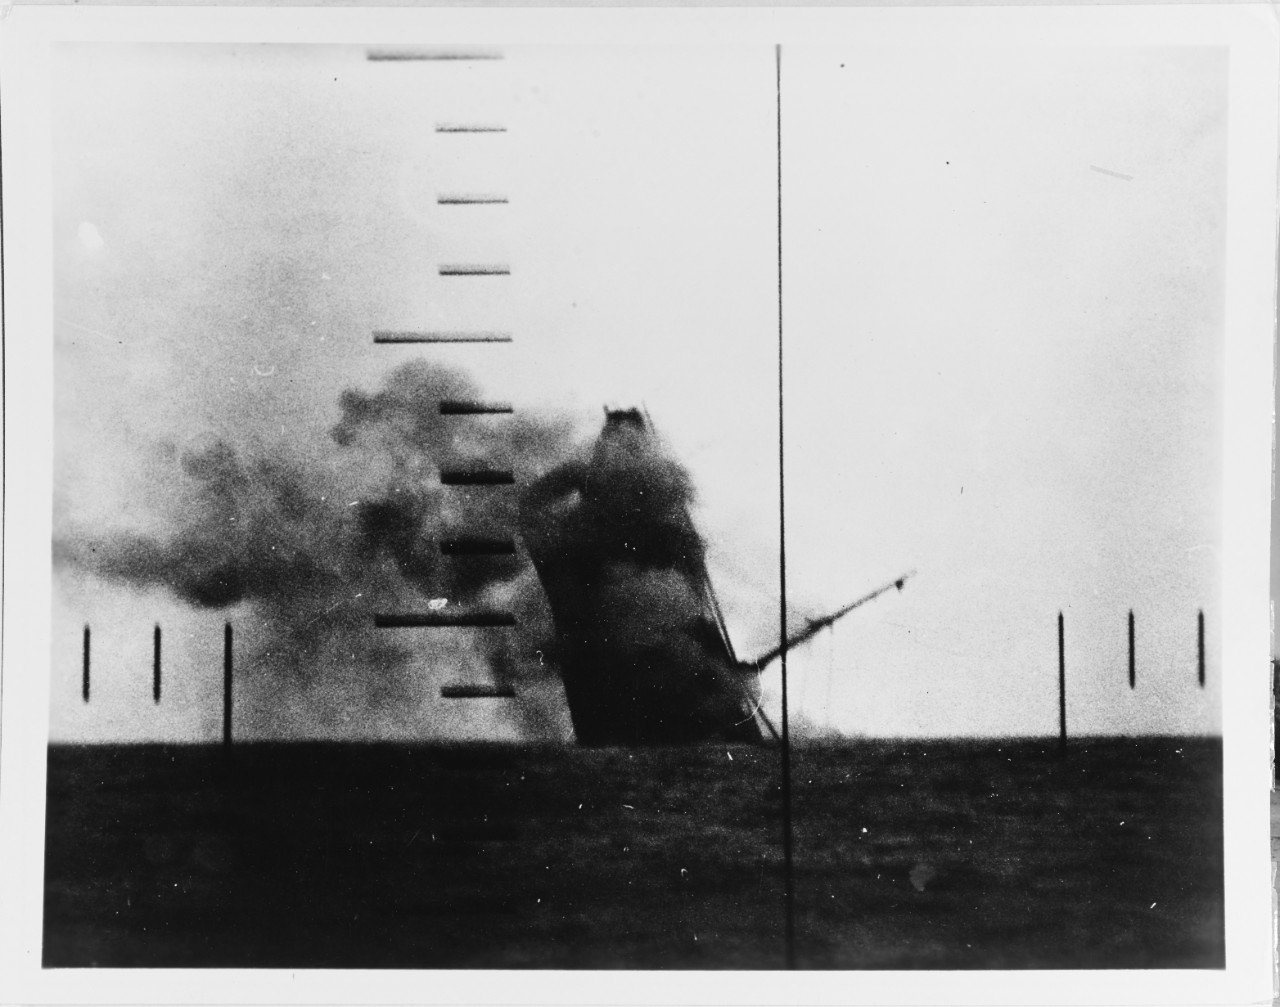 Japanese cargo ship sinking in the Yellow Sea, off China, on 23 March 1943. Periscope photograph, taken from USS Wahoo (SS-238), which had torpedoed her. (U.S. Navy/National Archives)